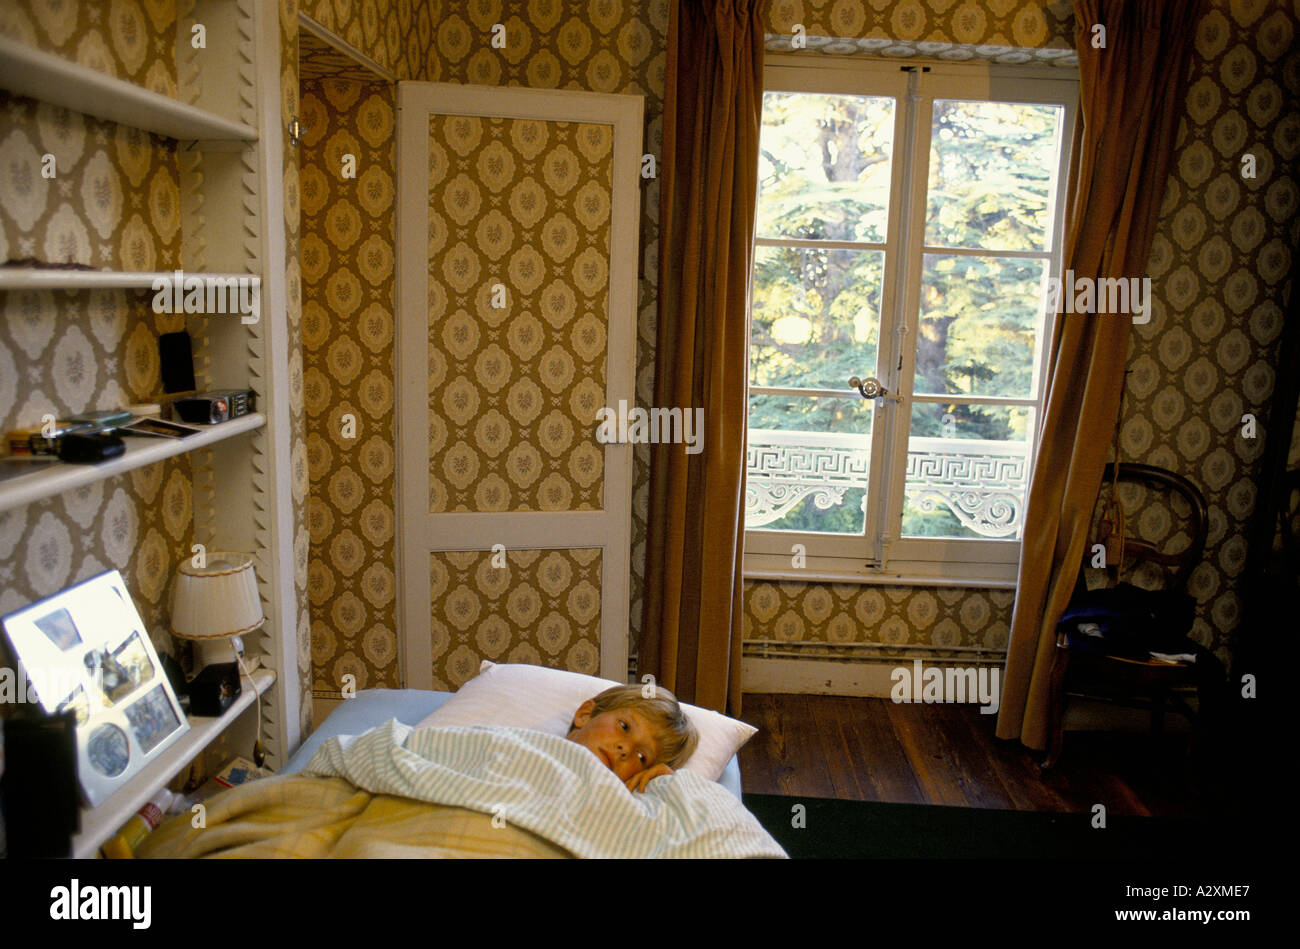 The school has an annex at Saveterre Chateau near Toulouse, France wher pupils go in their final year to learn French. - Stock Image